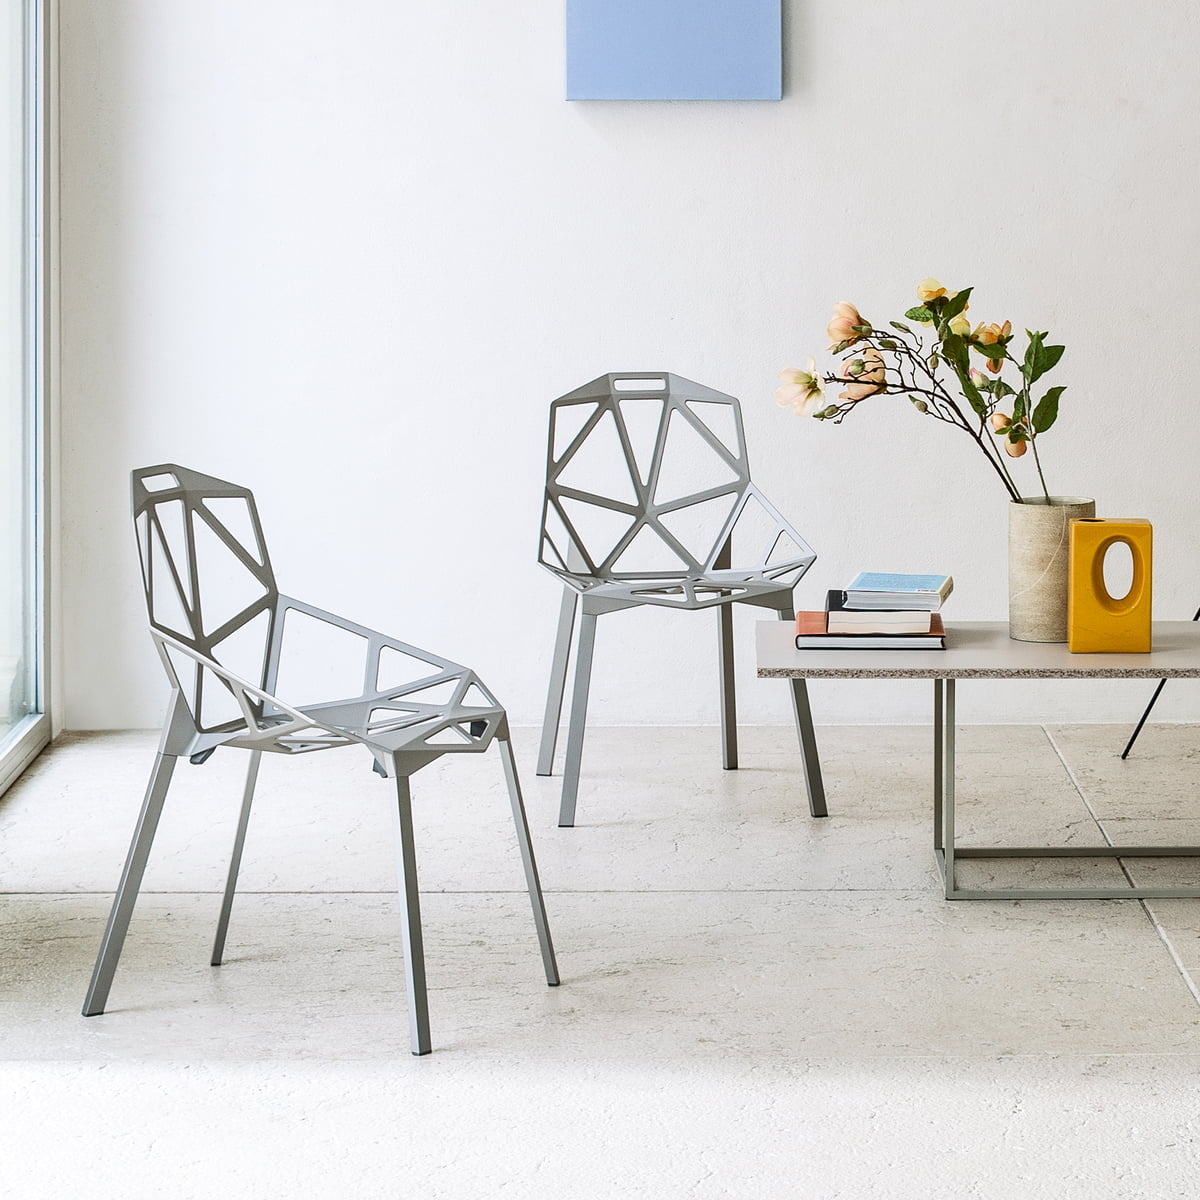 Chair_One by Konstantin Grcic